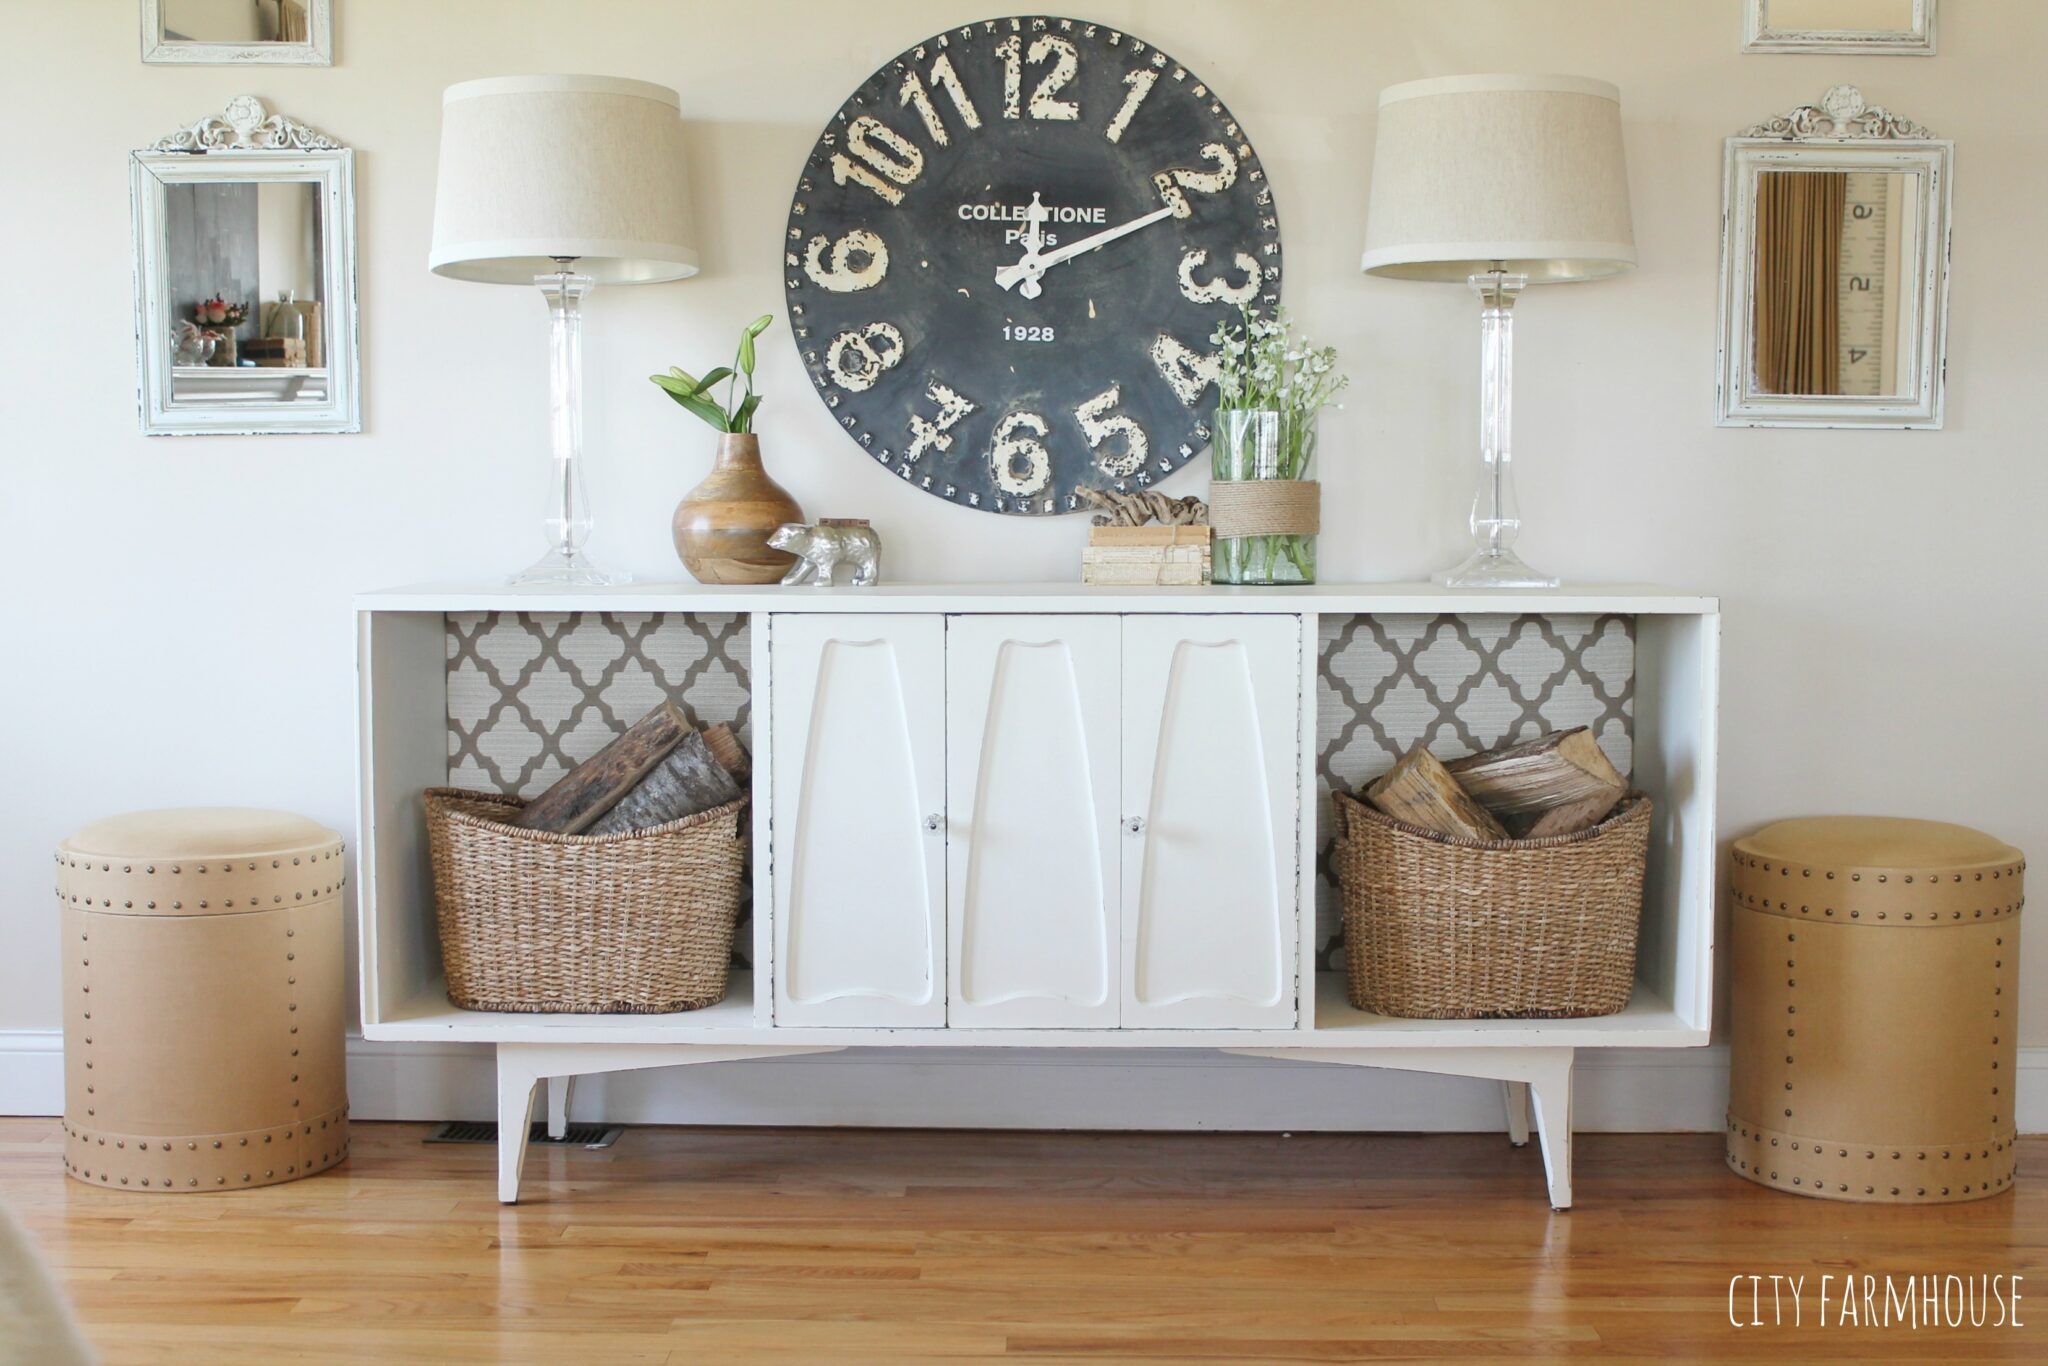 Vintage Mod Makeover Simple Easy Tips To Get A New Look For Less Adding Wall Decor Clock Gershwin Gertie